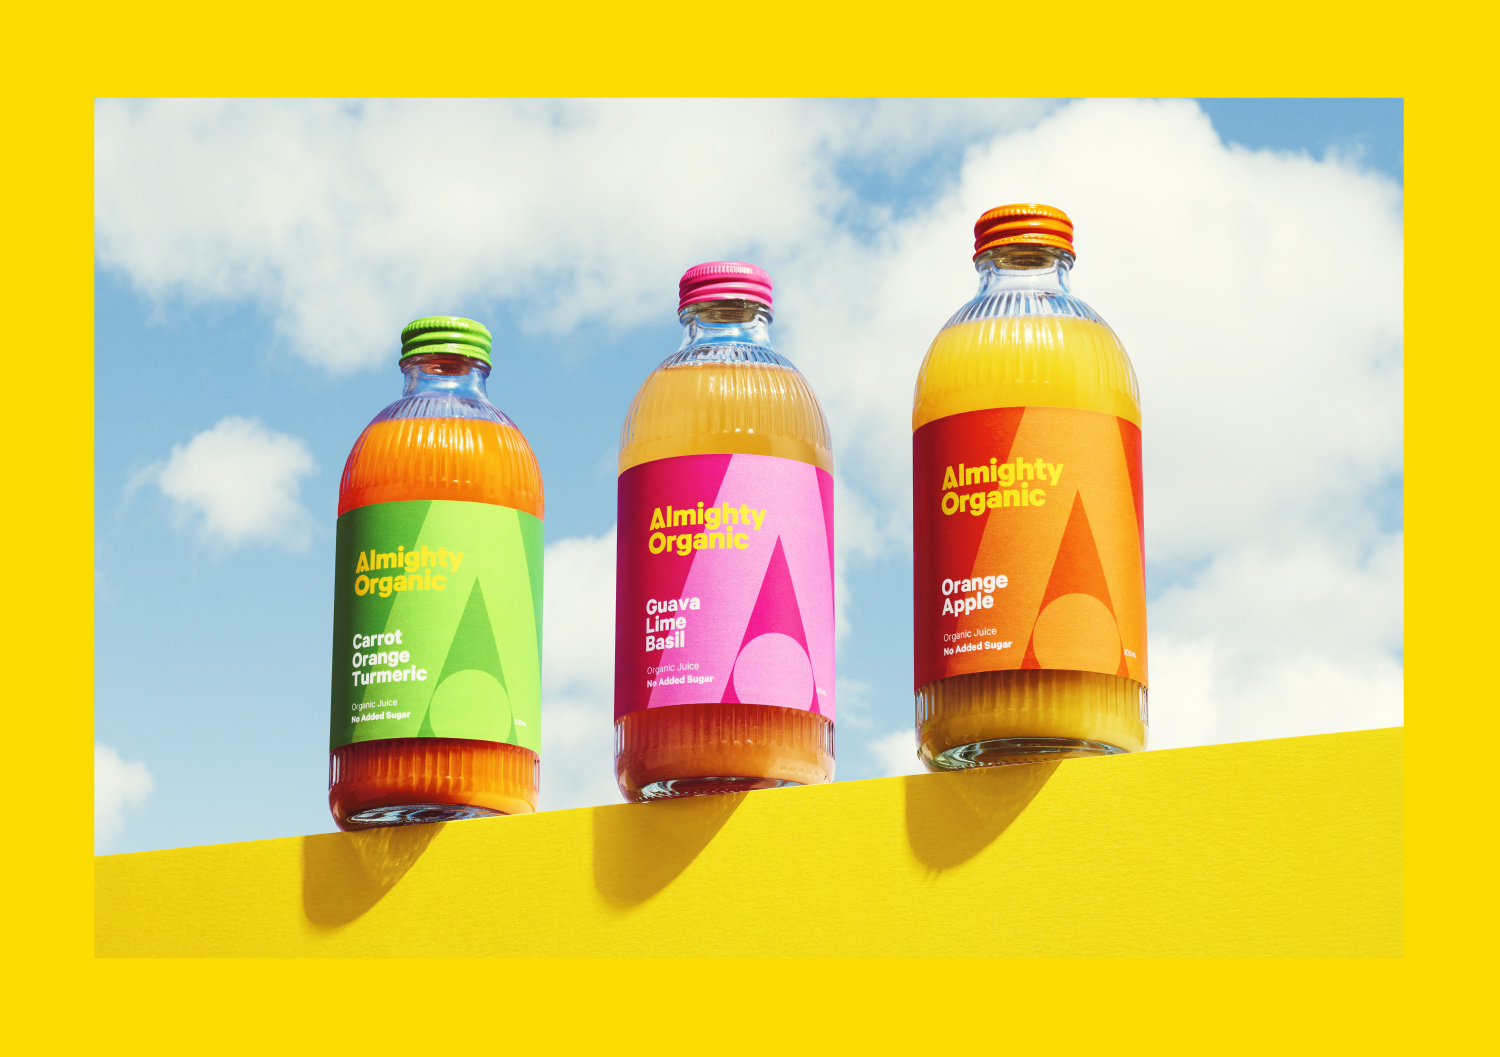 Marx Design Design Almighty Organic Rebrand and Bottle Design